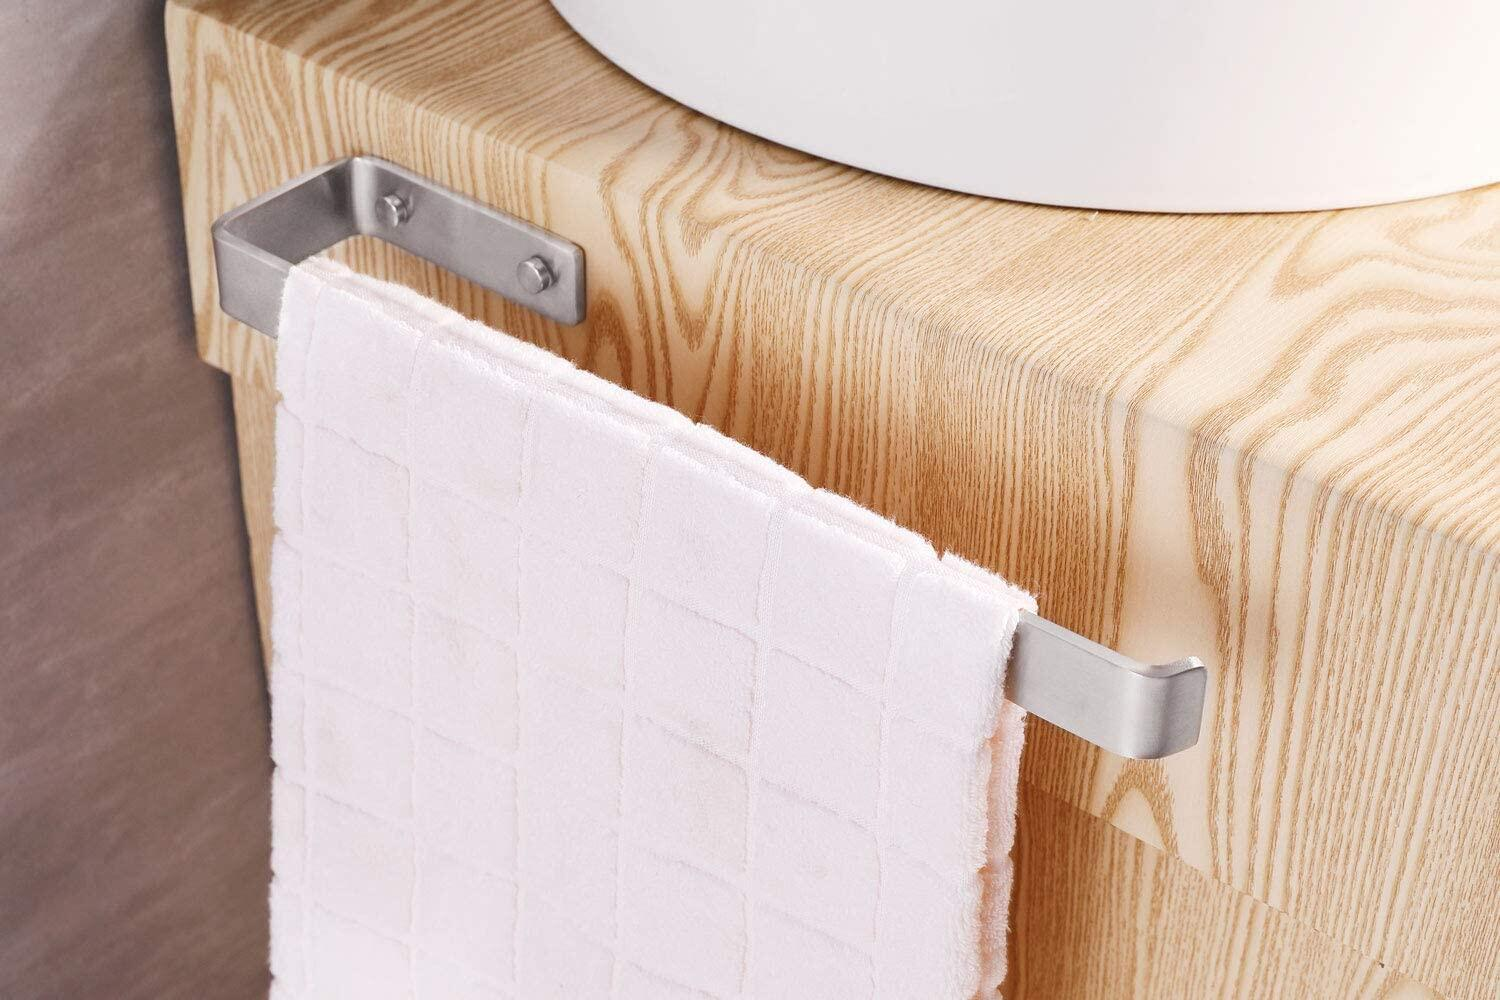 Towel Holder, brushed stainless steel, wall-mounted towel rail bathroom and kitchen, brushed cabinet mounting 40 cmTowel holder brushed stainless steel, wall-mounted towel rail bathroom and kitchen, brushed cabinet mounting 40 cmTowel Holder